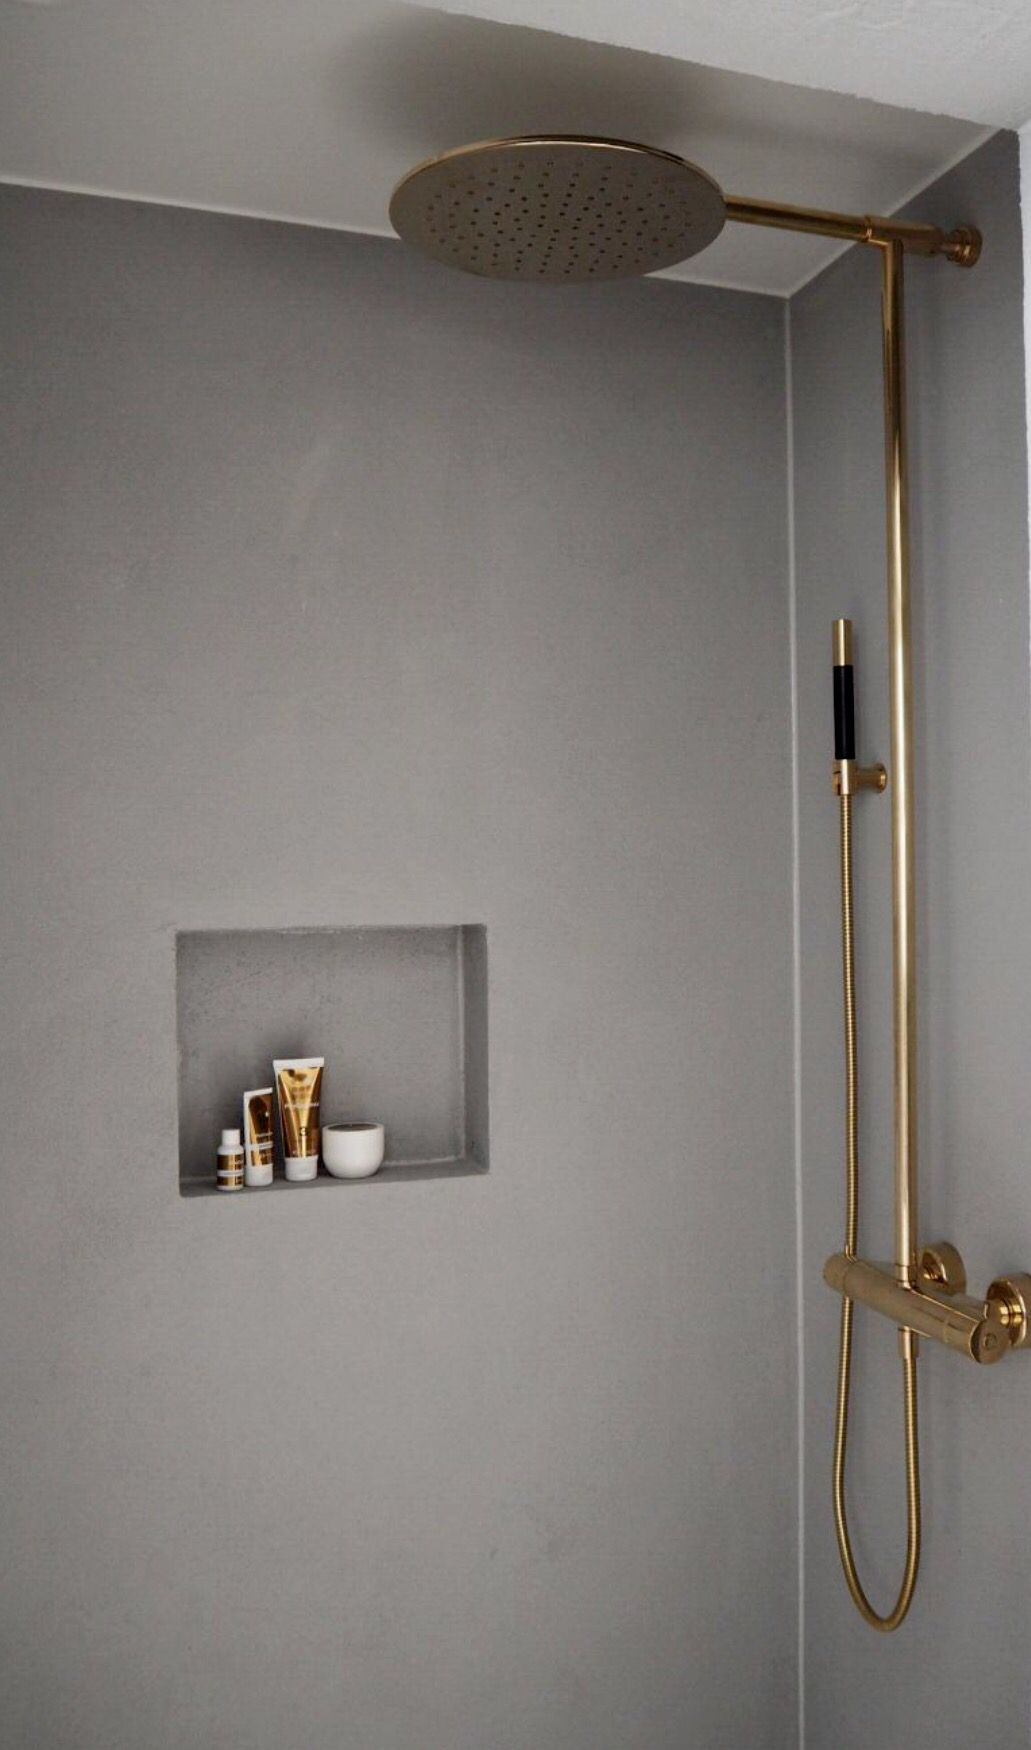 Cocoon Modern Shower Room Design Inspiration Copper Fittings Stainless Steel